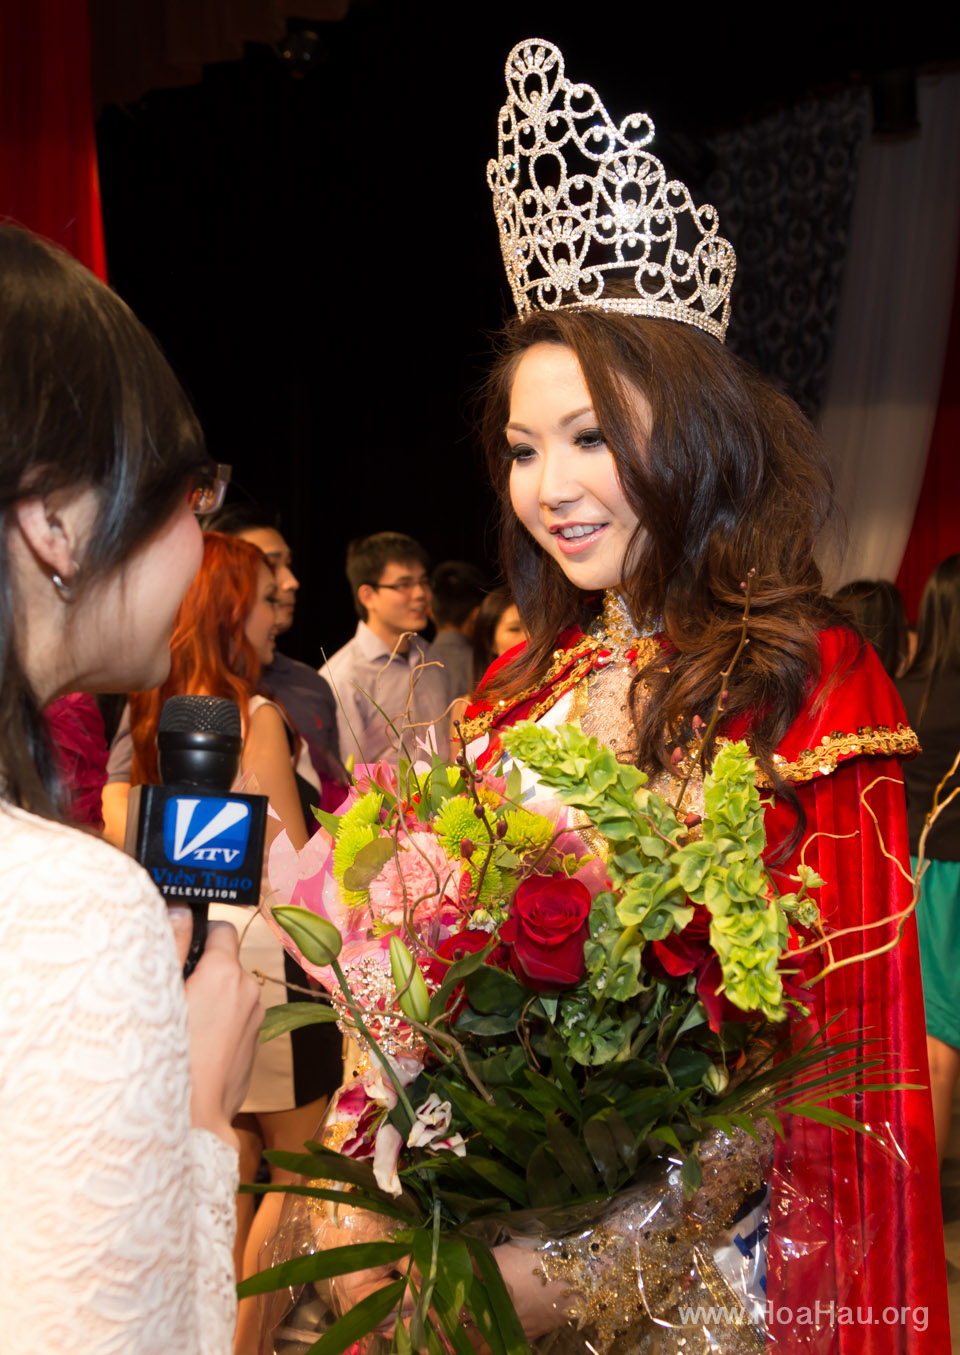 Miss Vietnam of Northern California 2014 - Hoa Hau Ao Dai Bac Cali 2014 - Behind the Scenes - Image 315